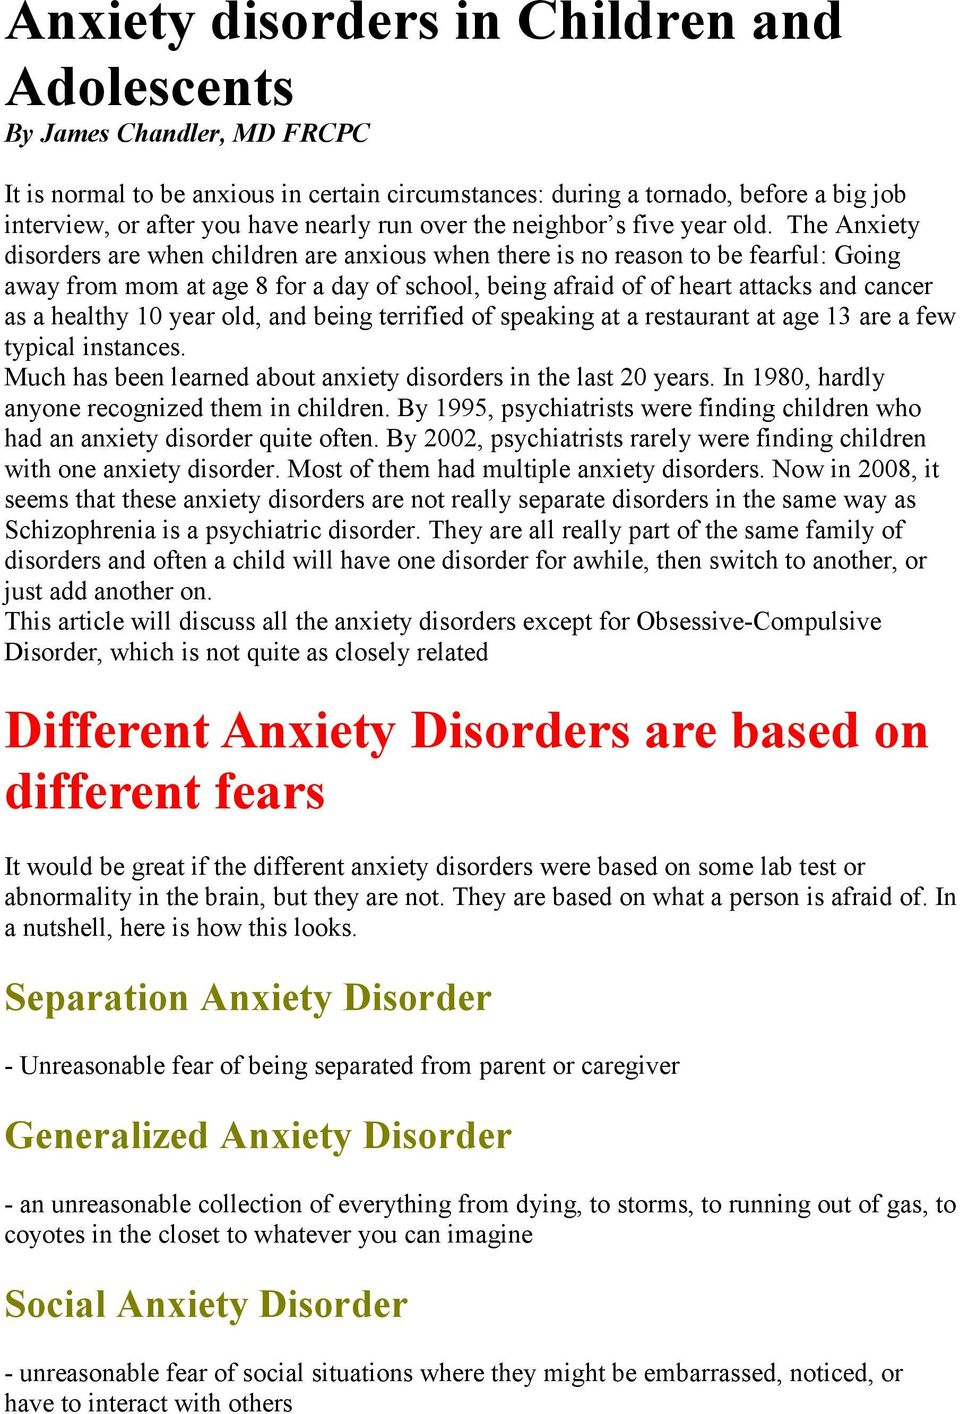 The Anxiety disorders are when children are anxious when there is no reason to be fearful: Going away from mom at age 8 for a day of school, being afraid of of heart attacks and cancer as a healthy